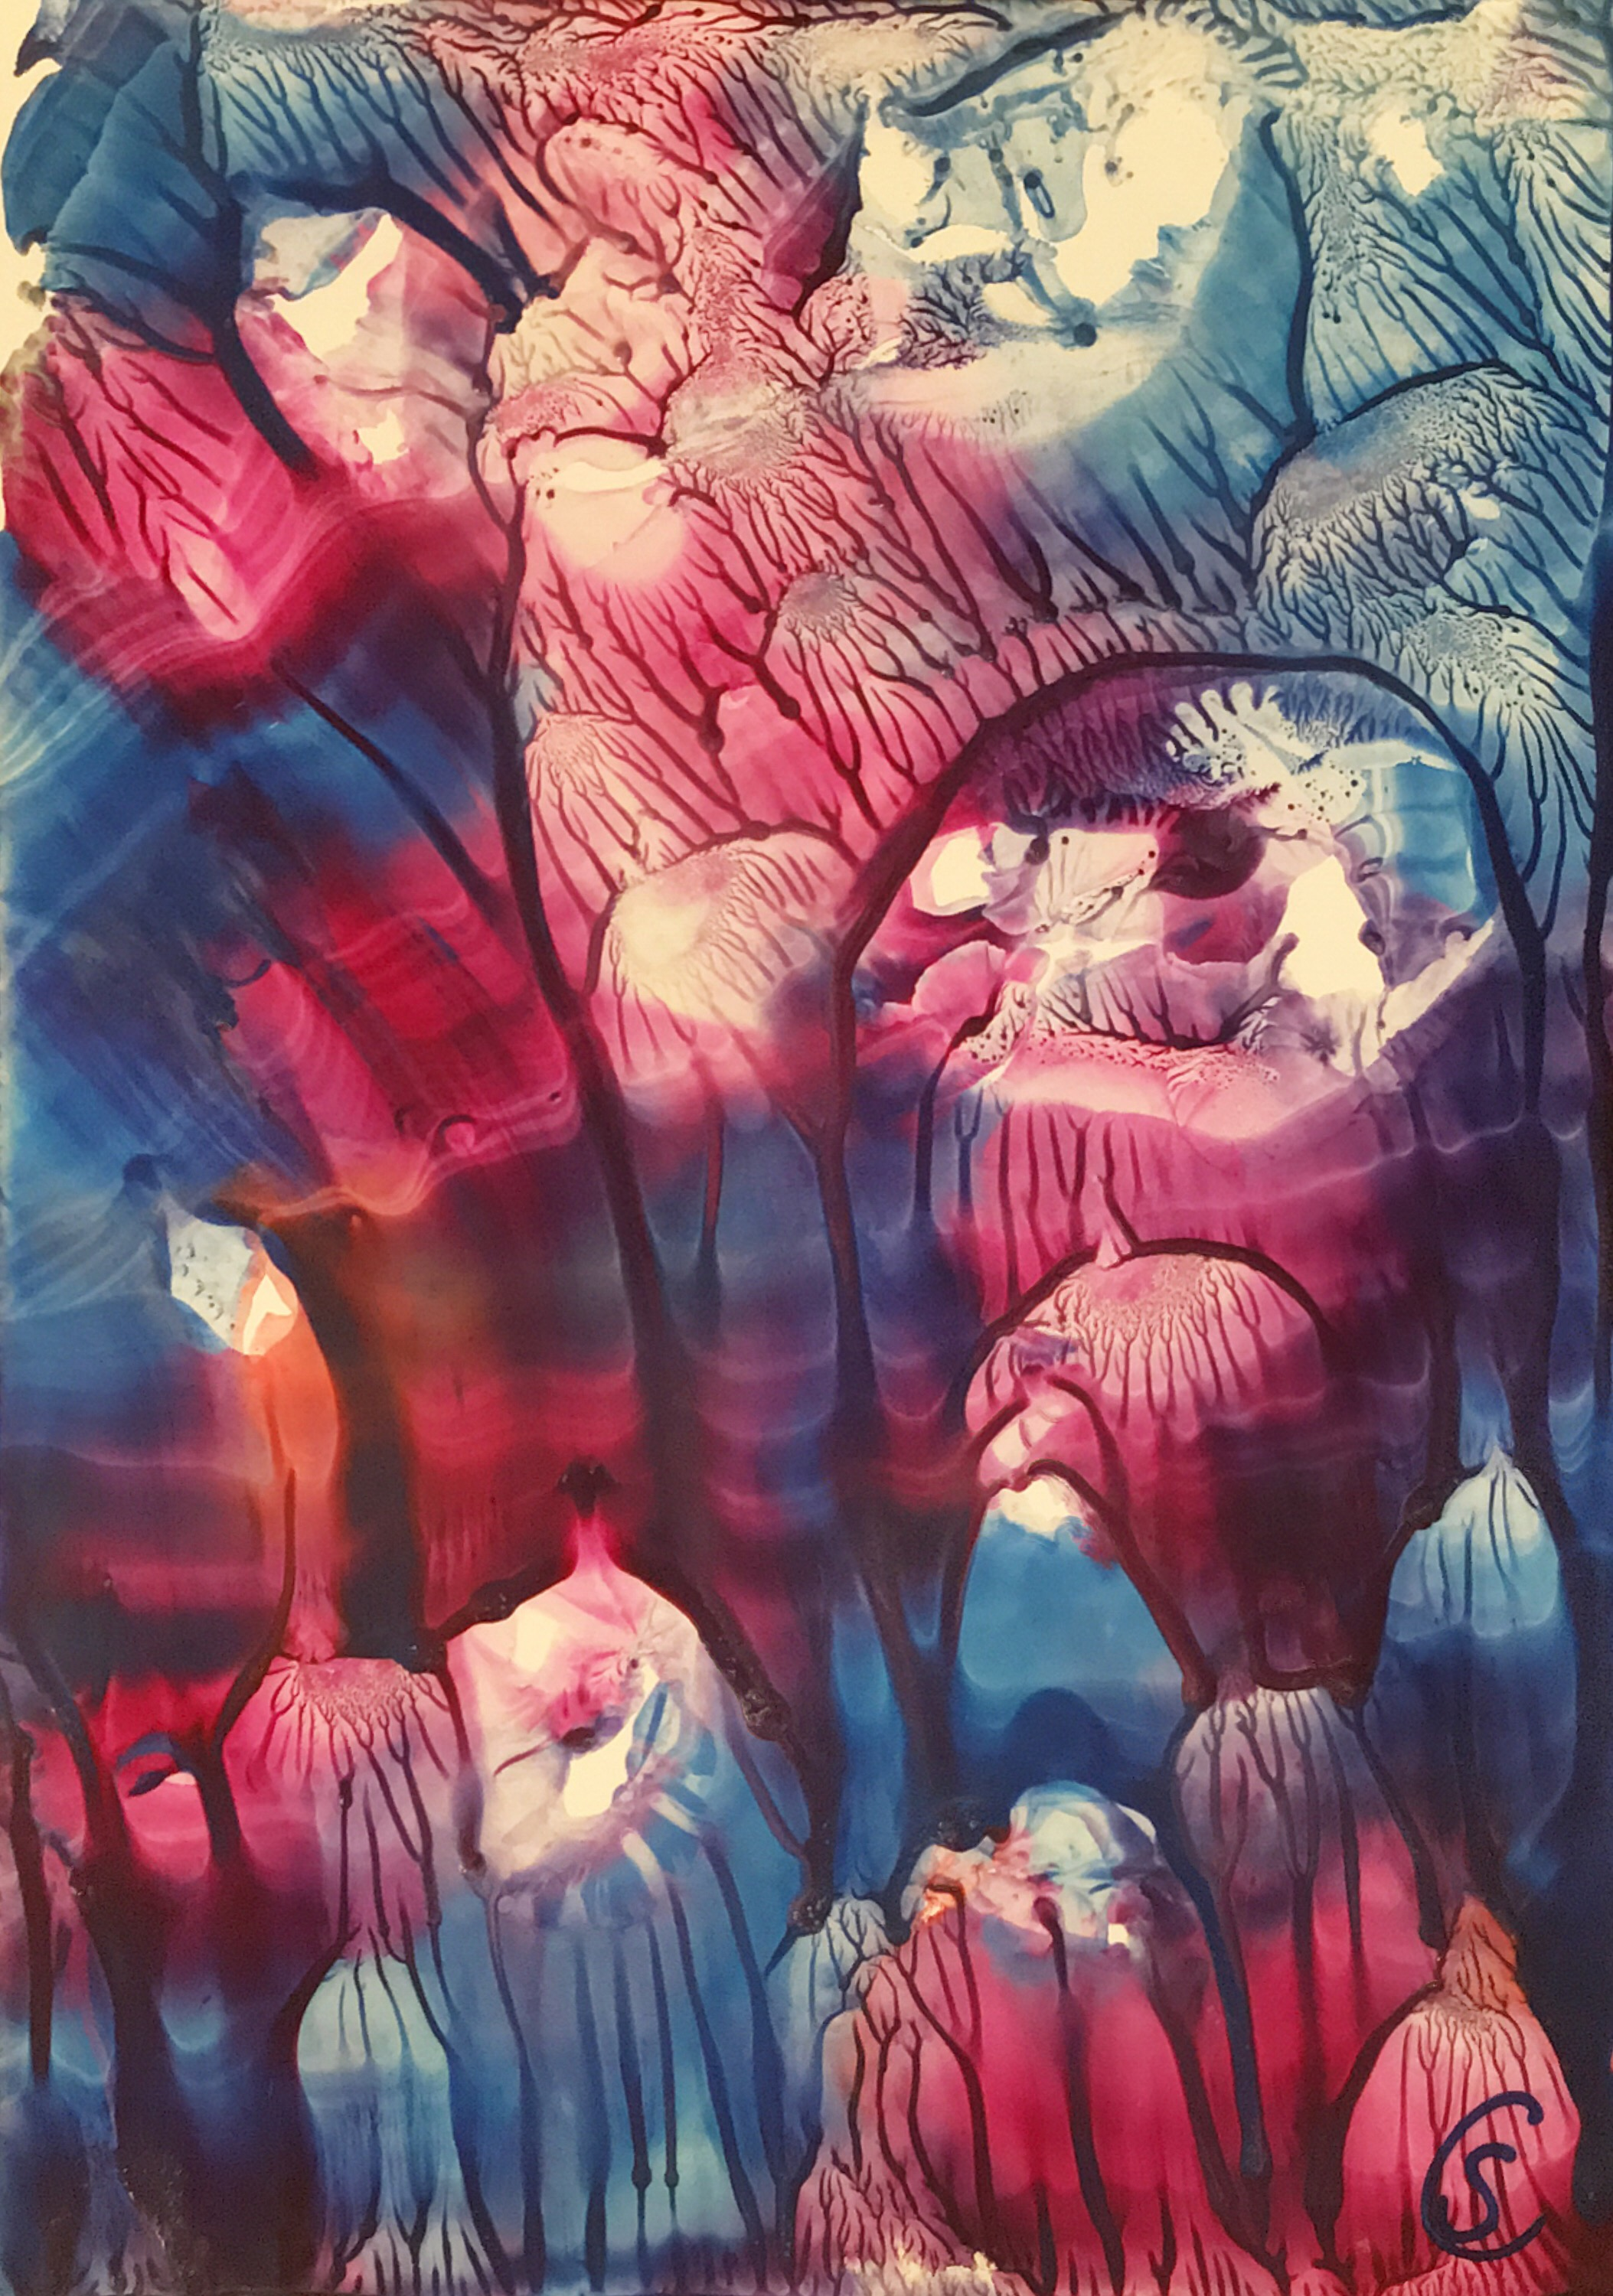 Jellyfish aquarium / Quallen im Aquarium; encaustic on paper, 21x15